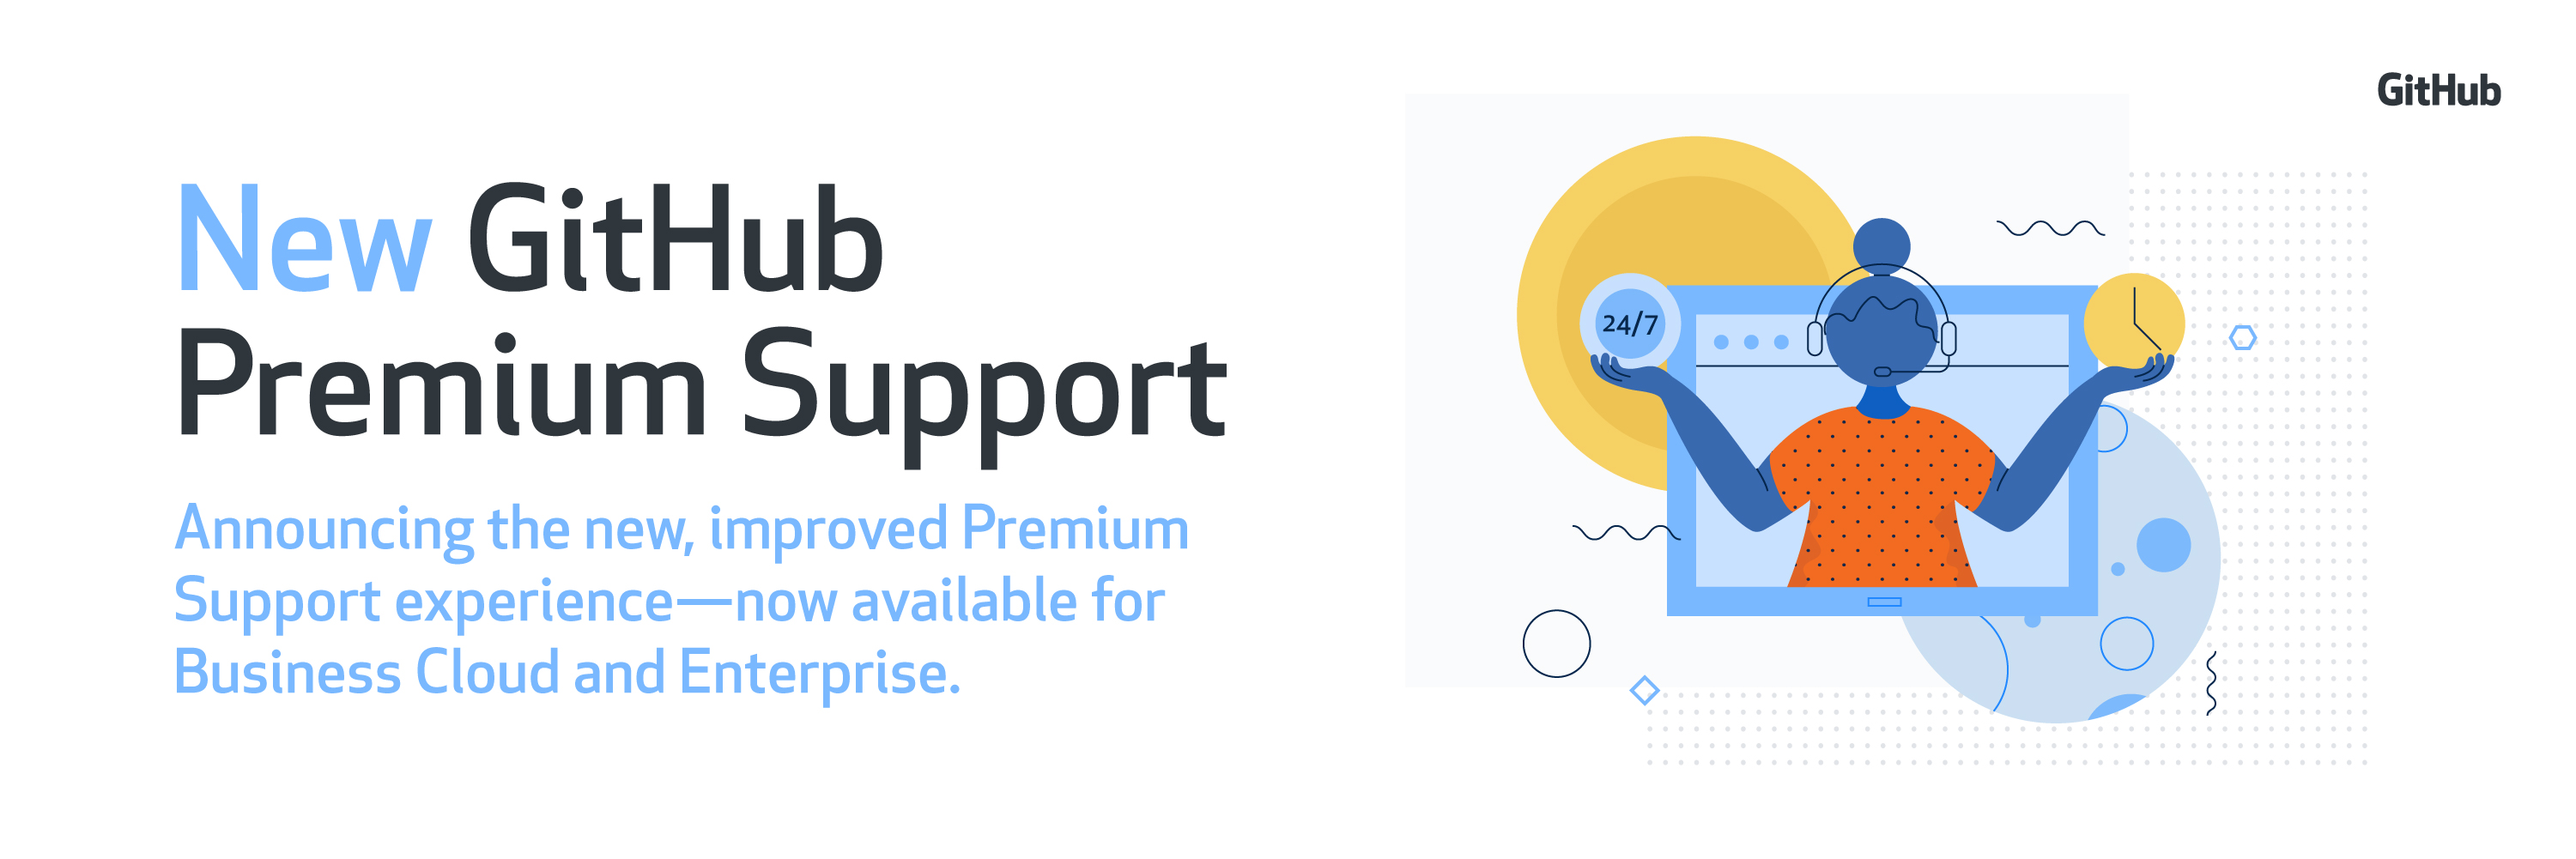 Introducing the new Premium Support